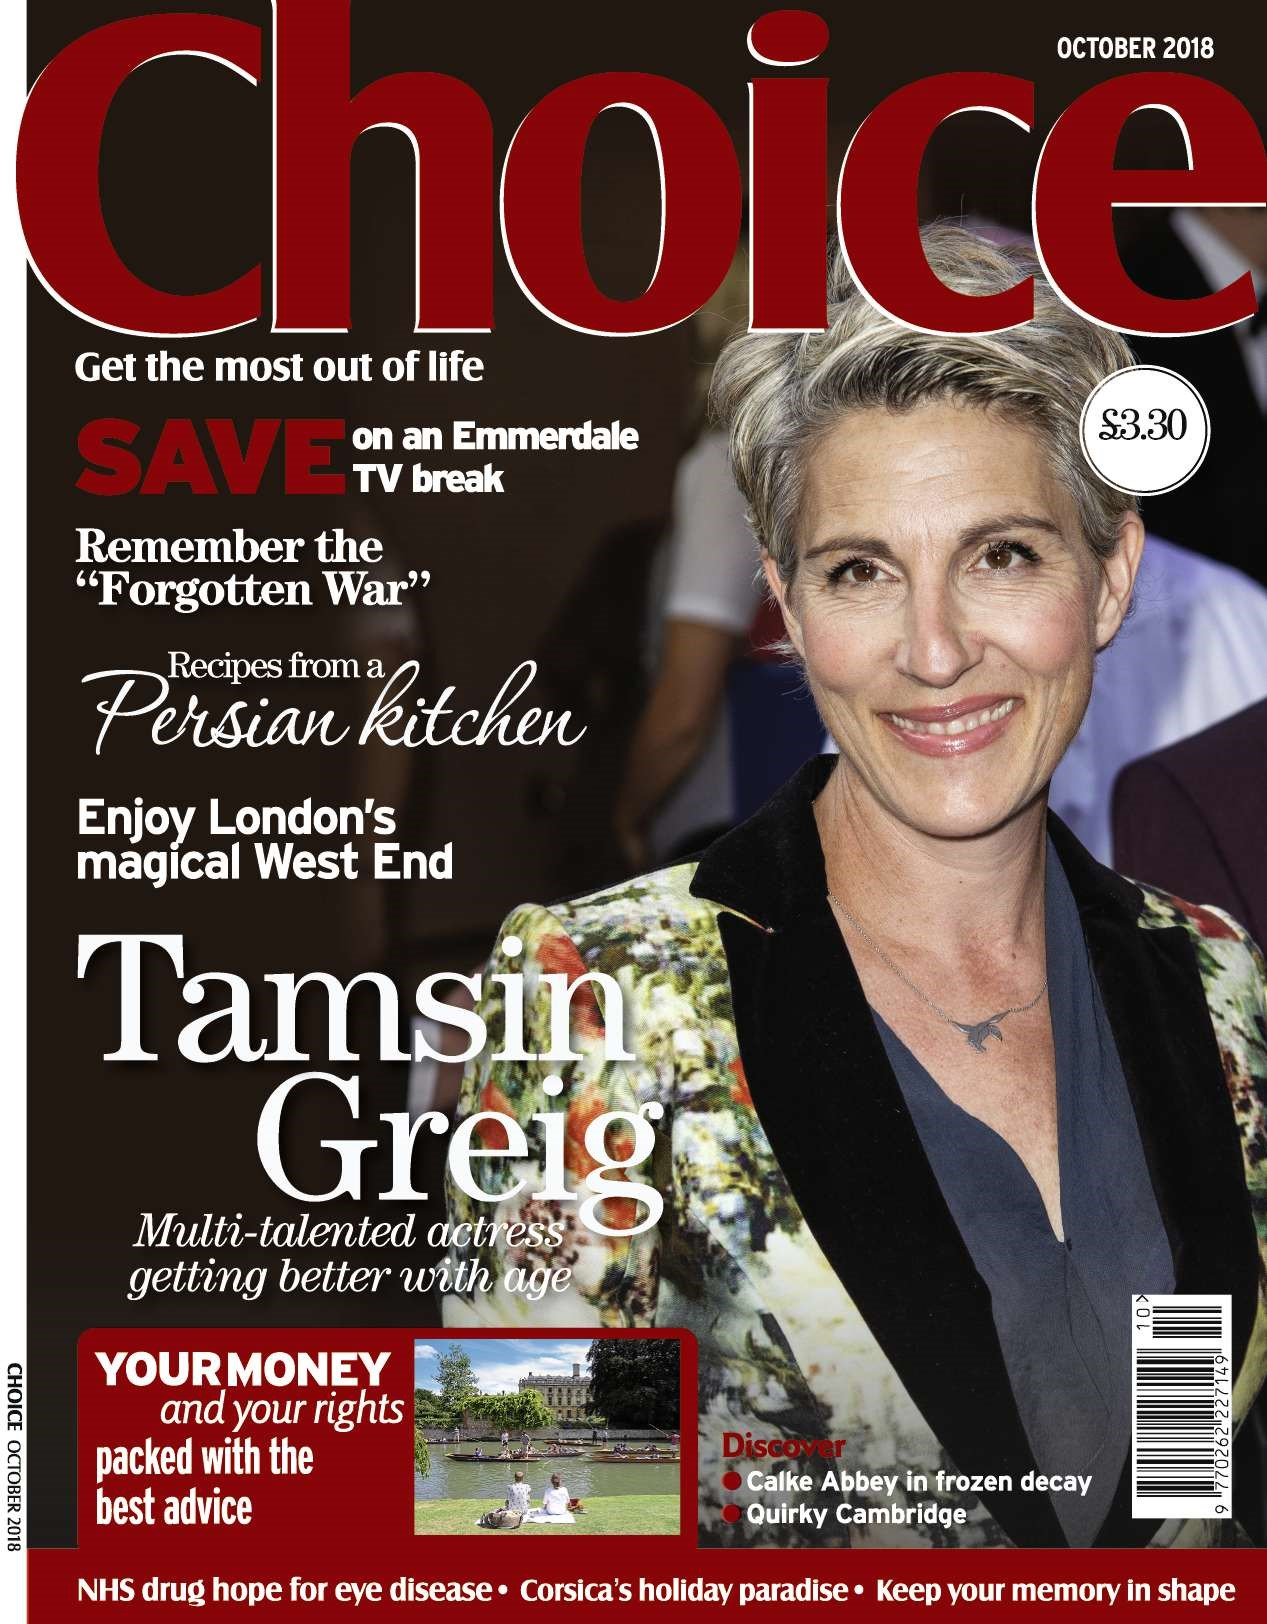 Choice Magazine's October 2018 issue